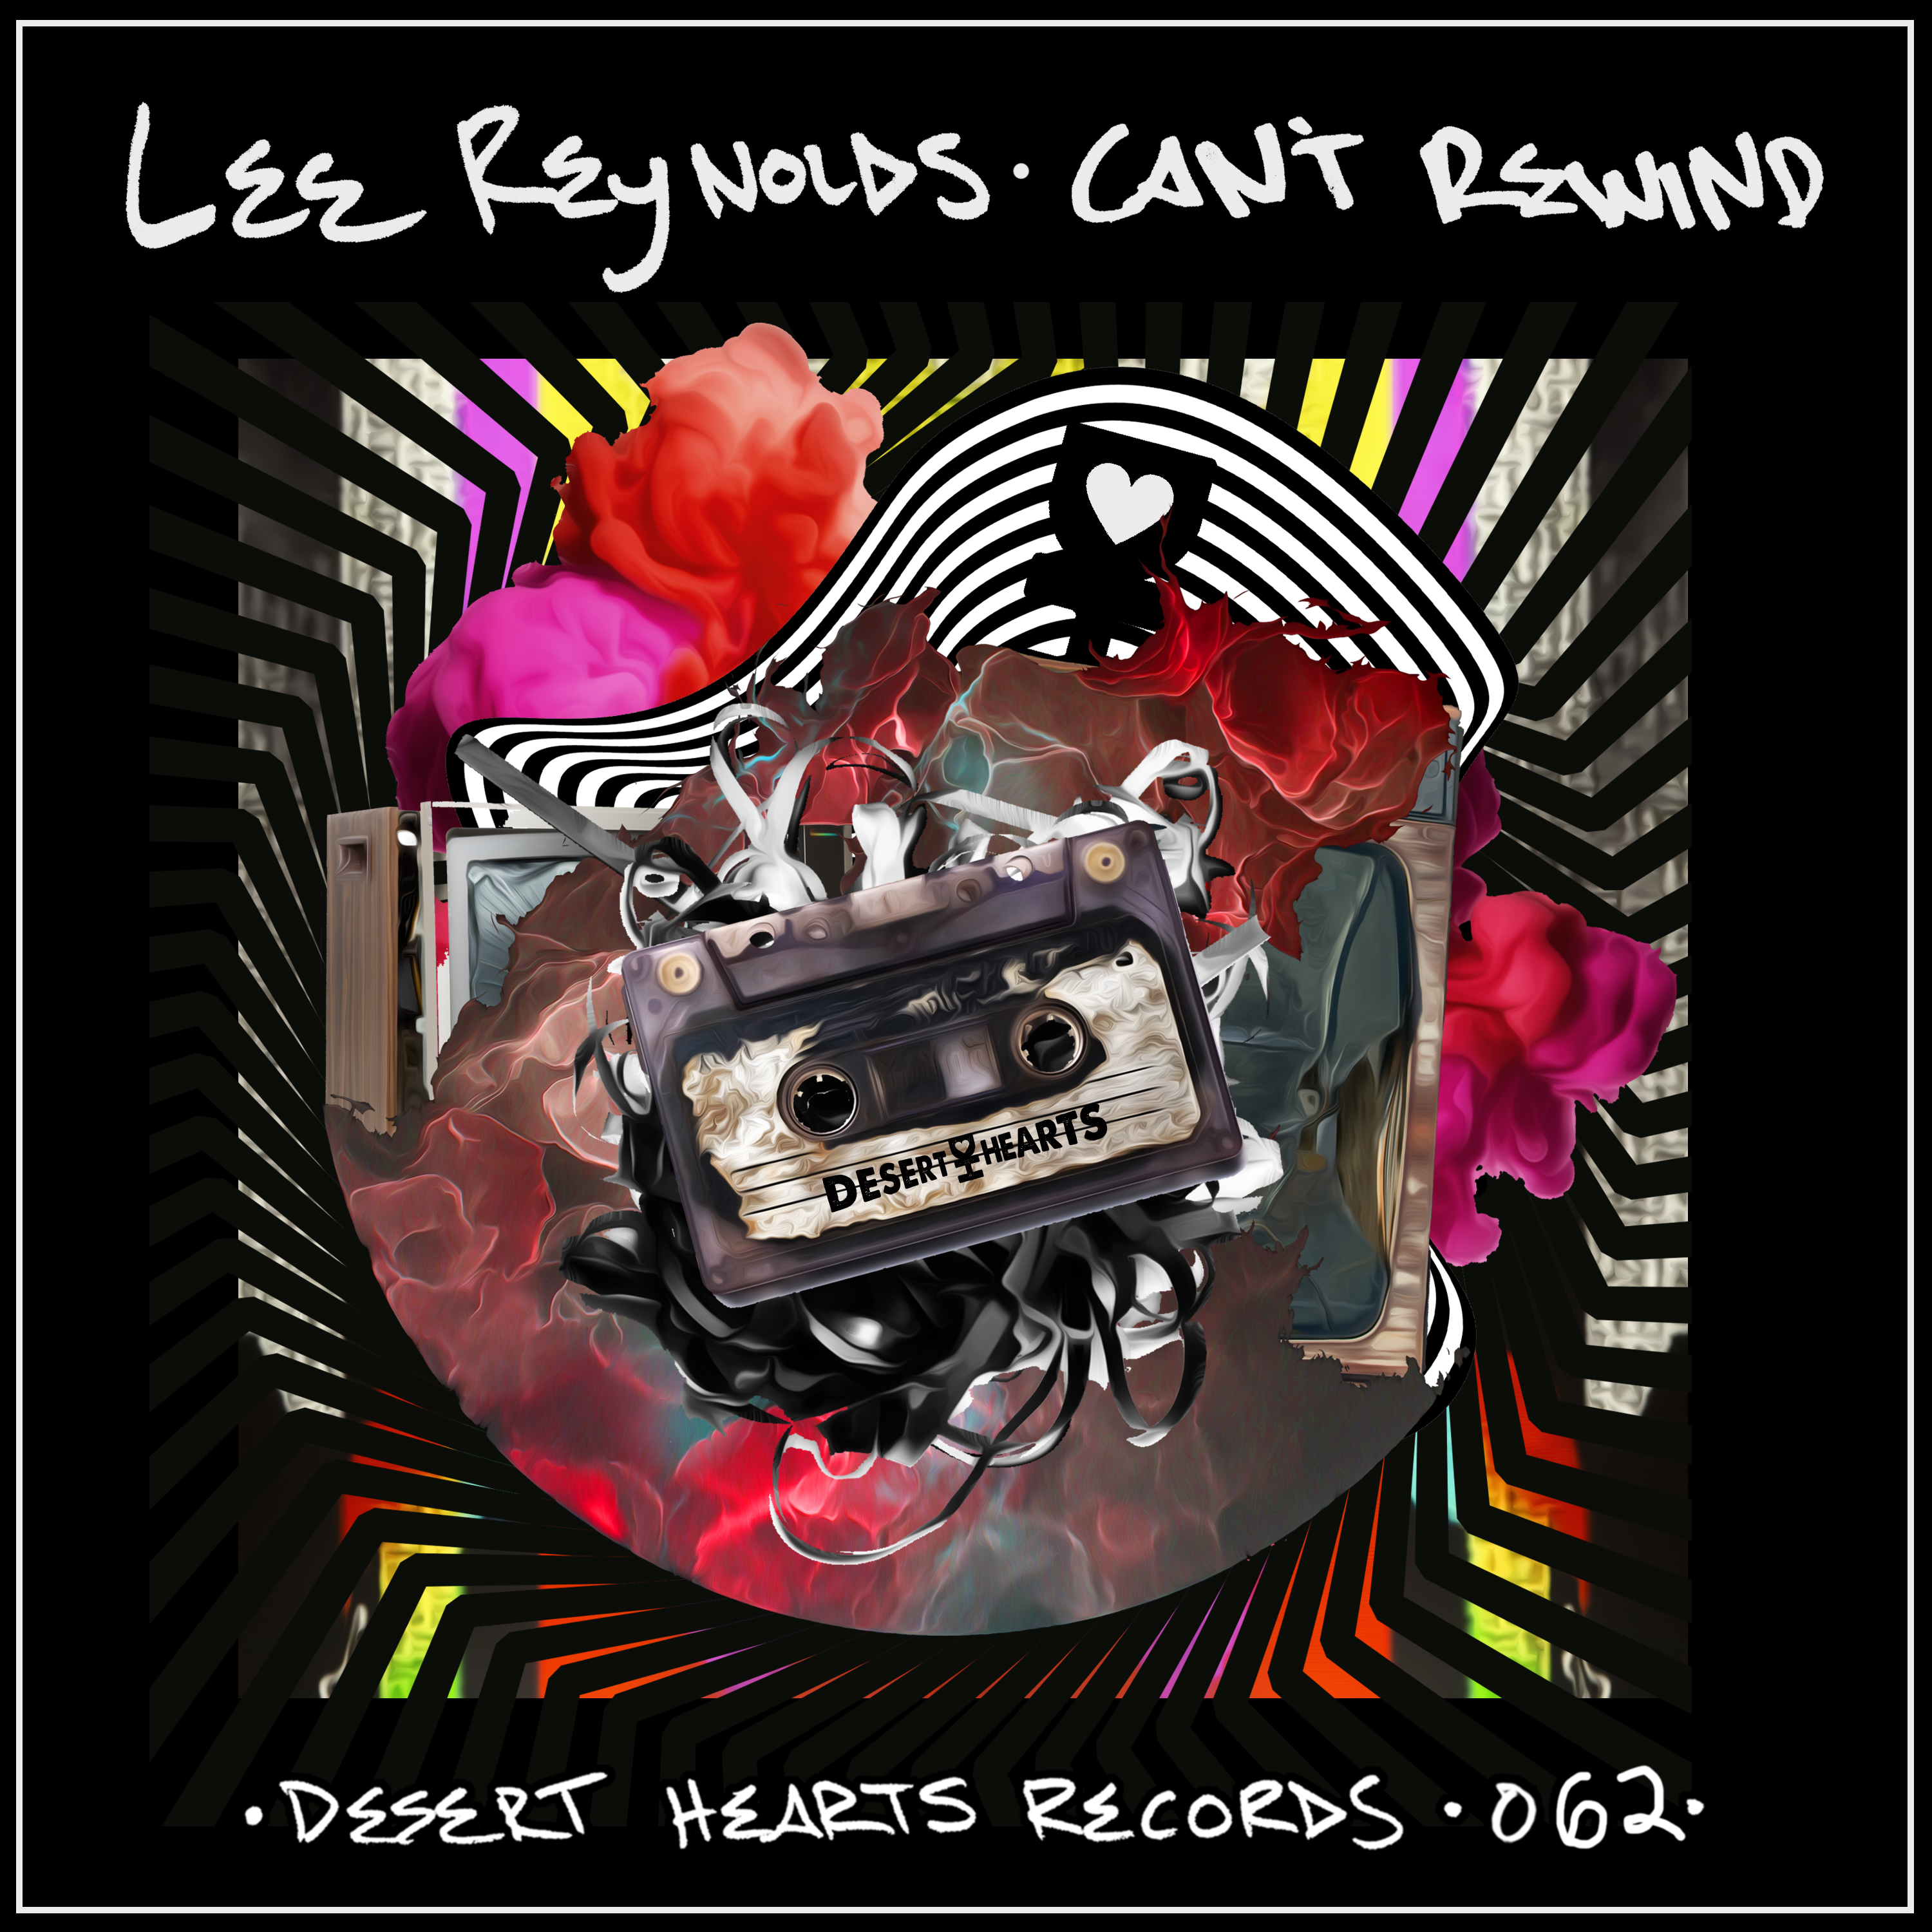 """Lee Reynolds drops """"Can't Rewind"""" EP on Desert Hearts Records"""